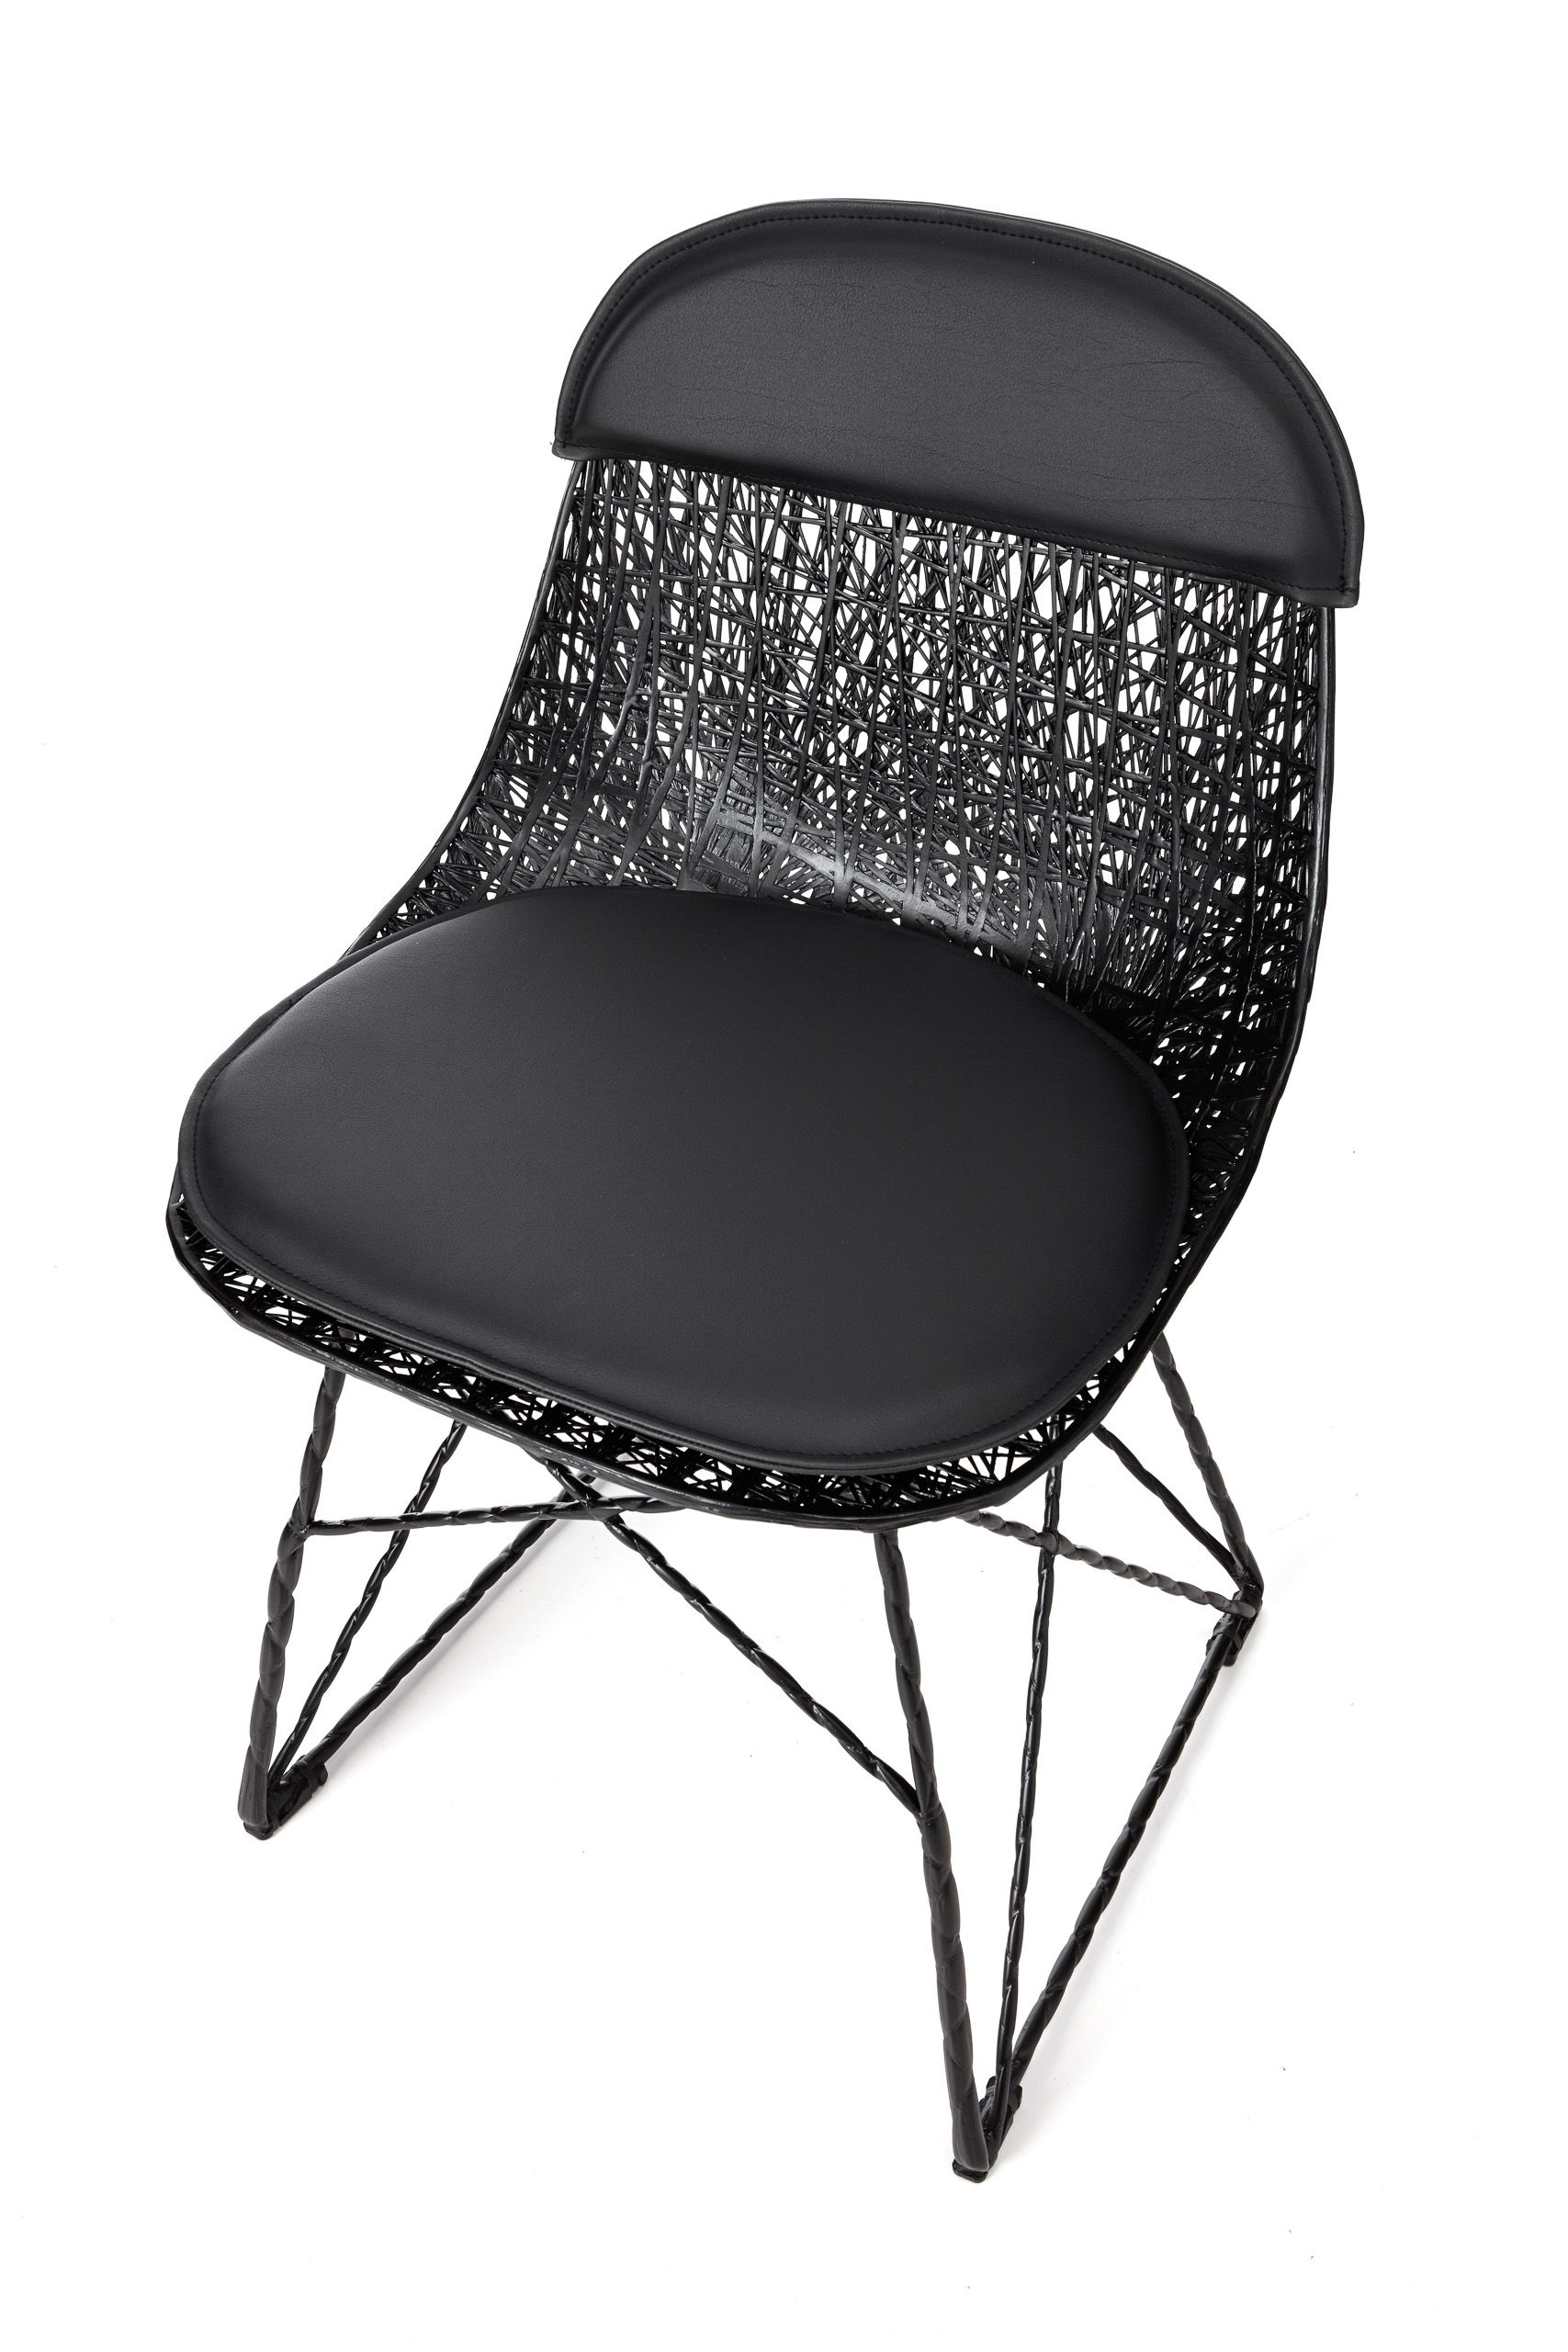 Exceptional Moooi Carbon Fiber Dining Chair With Seat Pad And Cap For Sale At 1stdibs